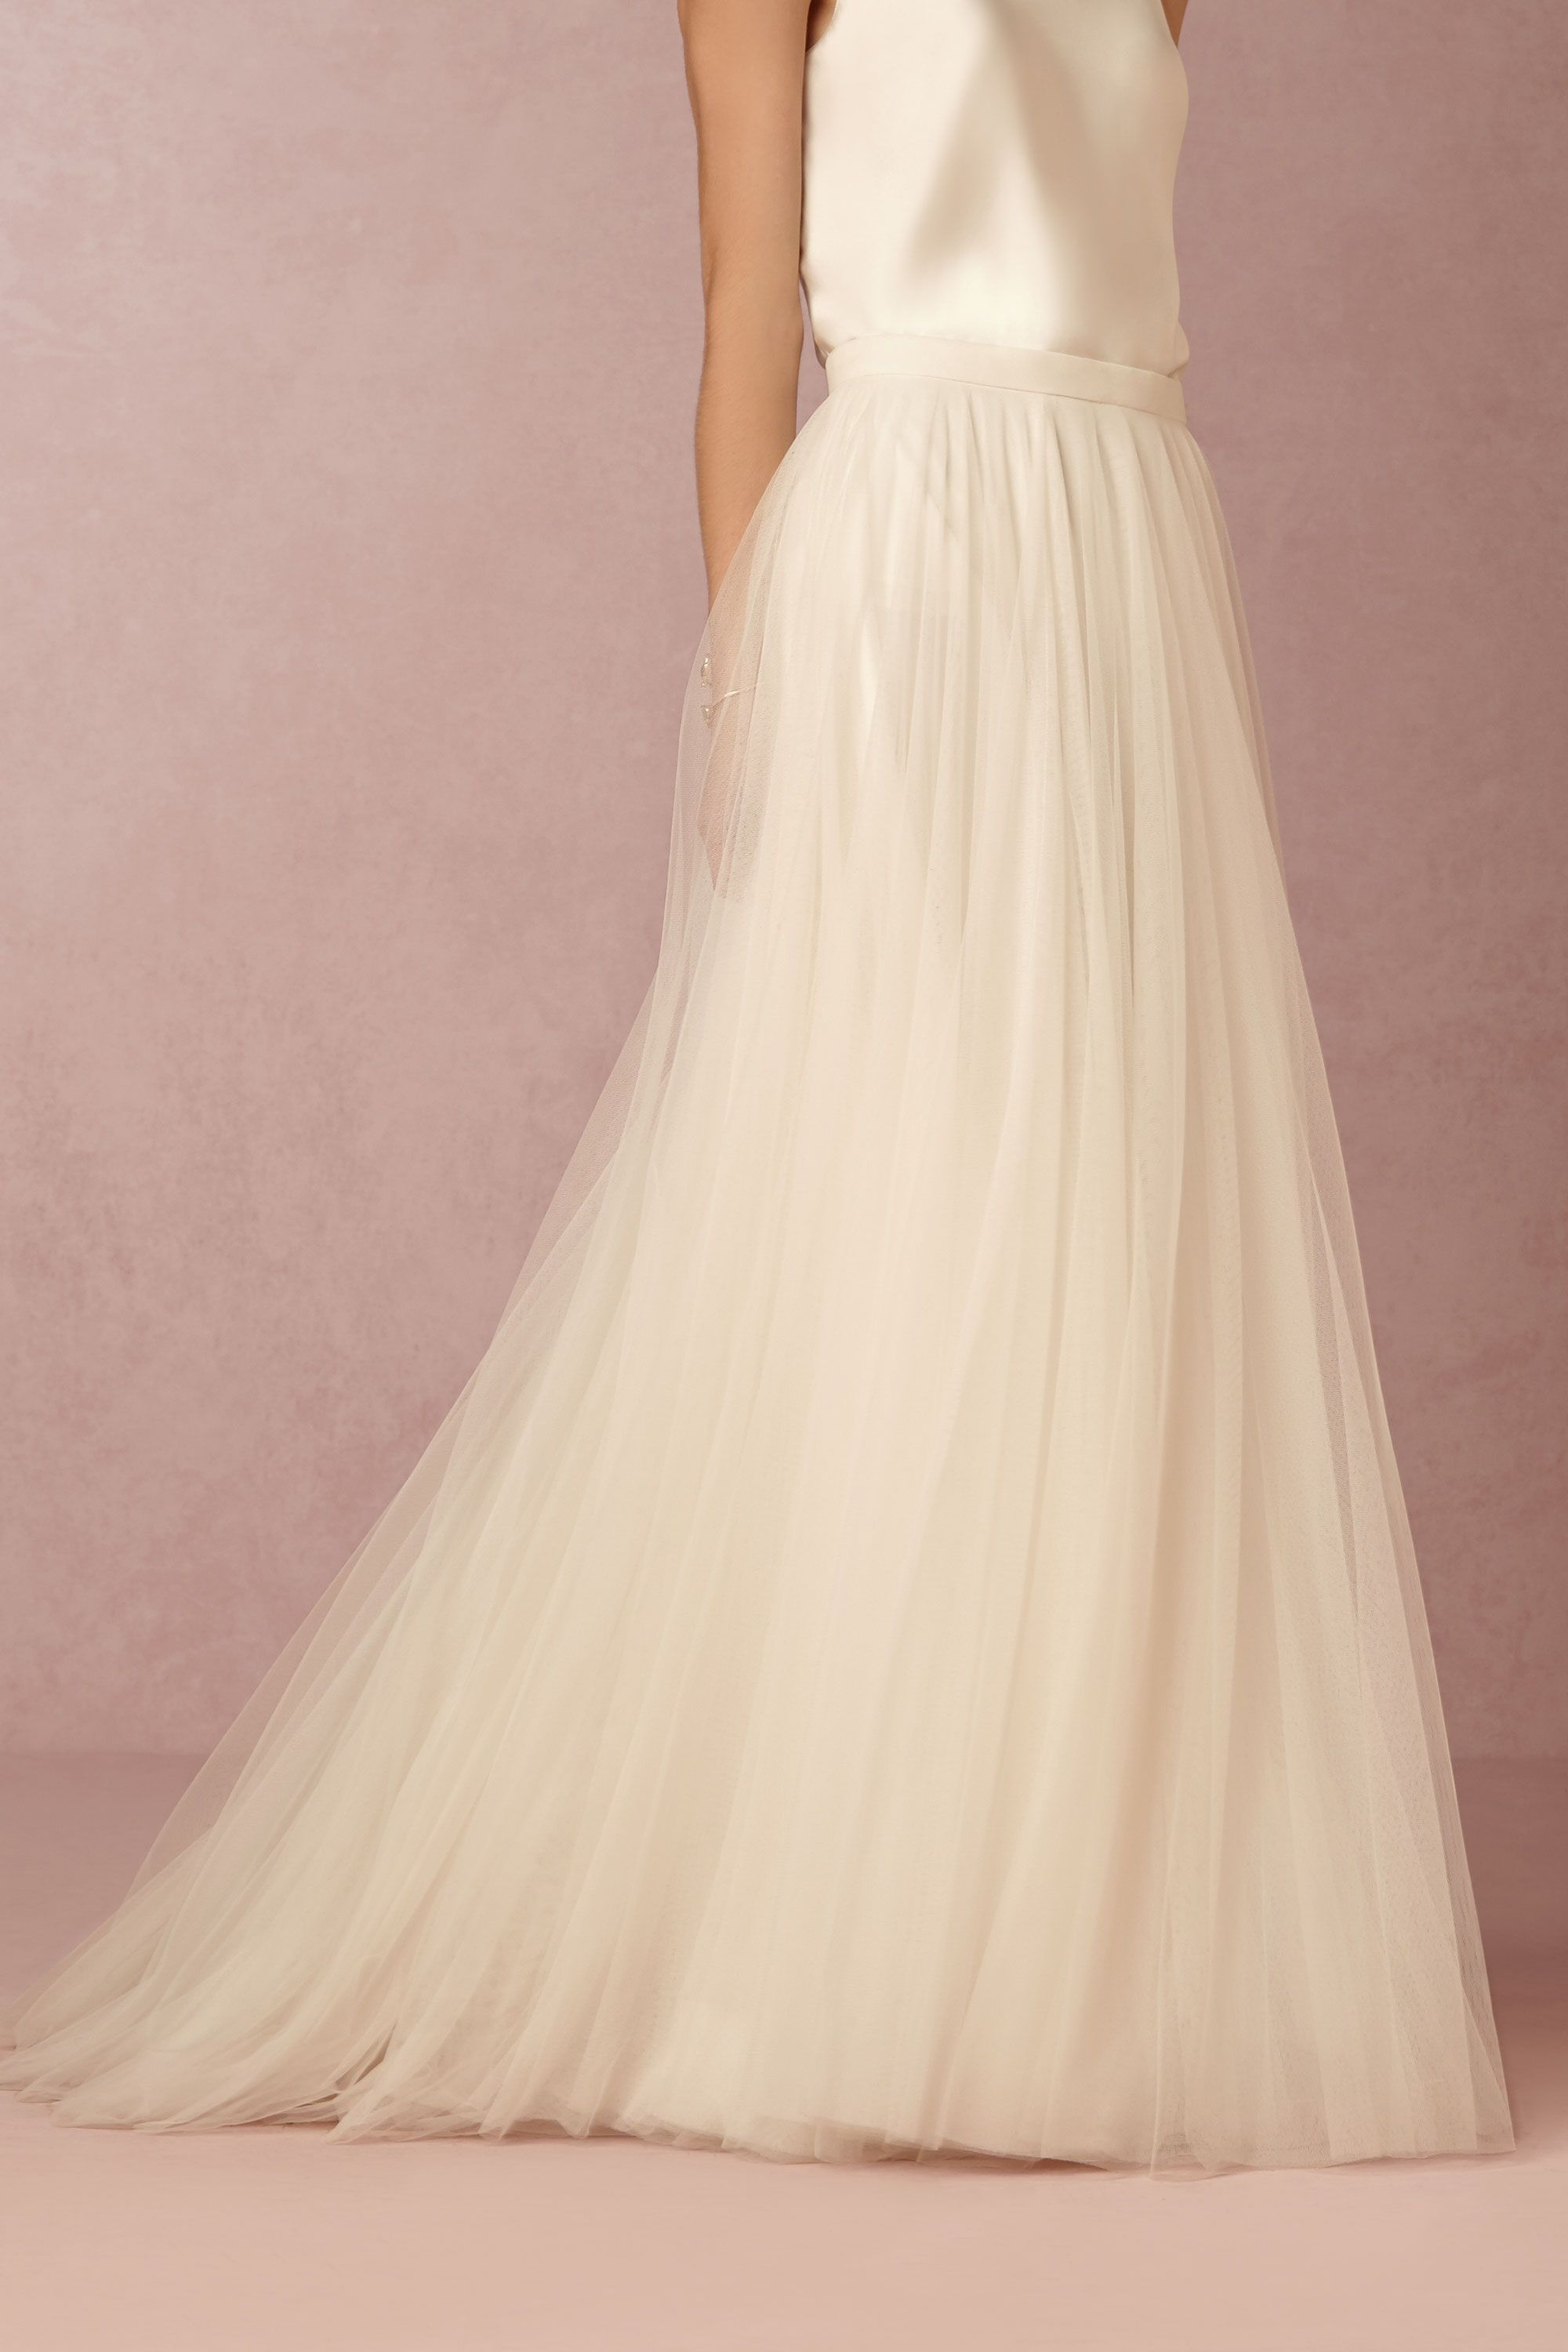 BHLDN Amora Skirt in Bride at BHLDN | Every Little Girl\'s Dream ...